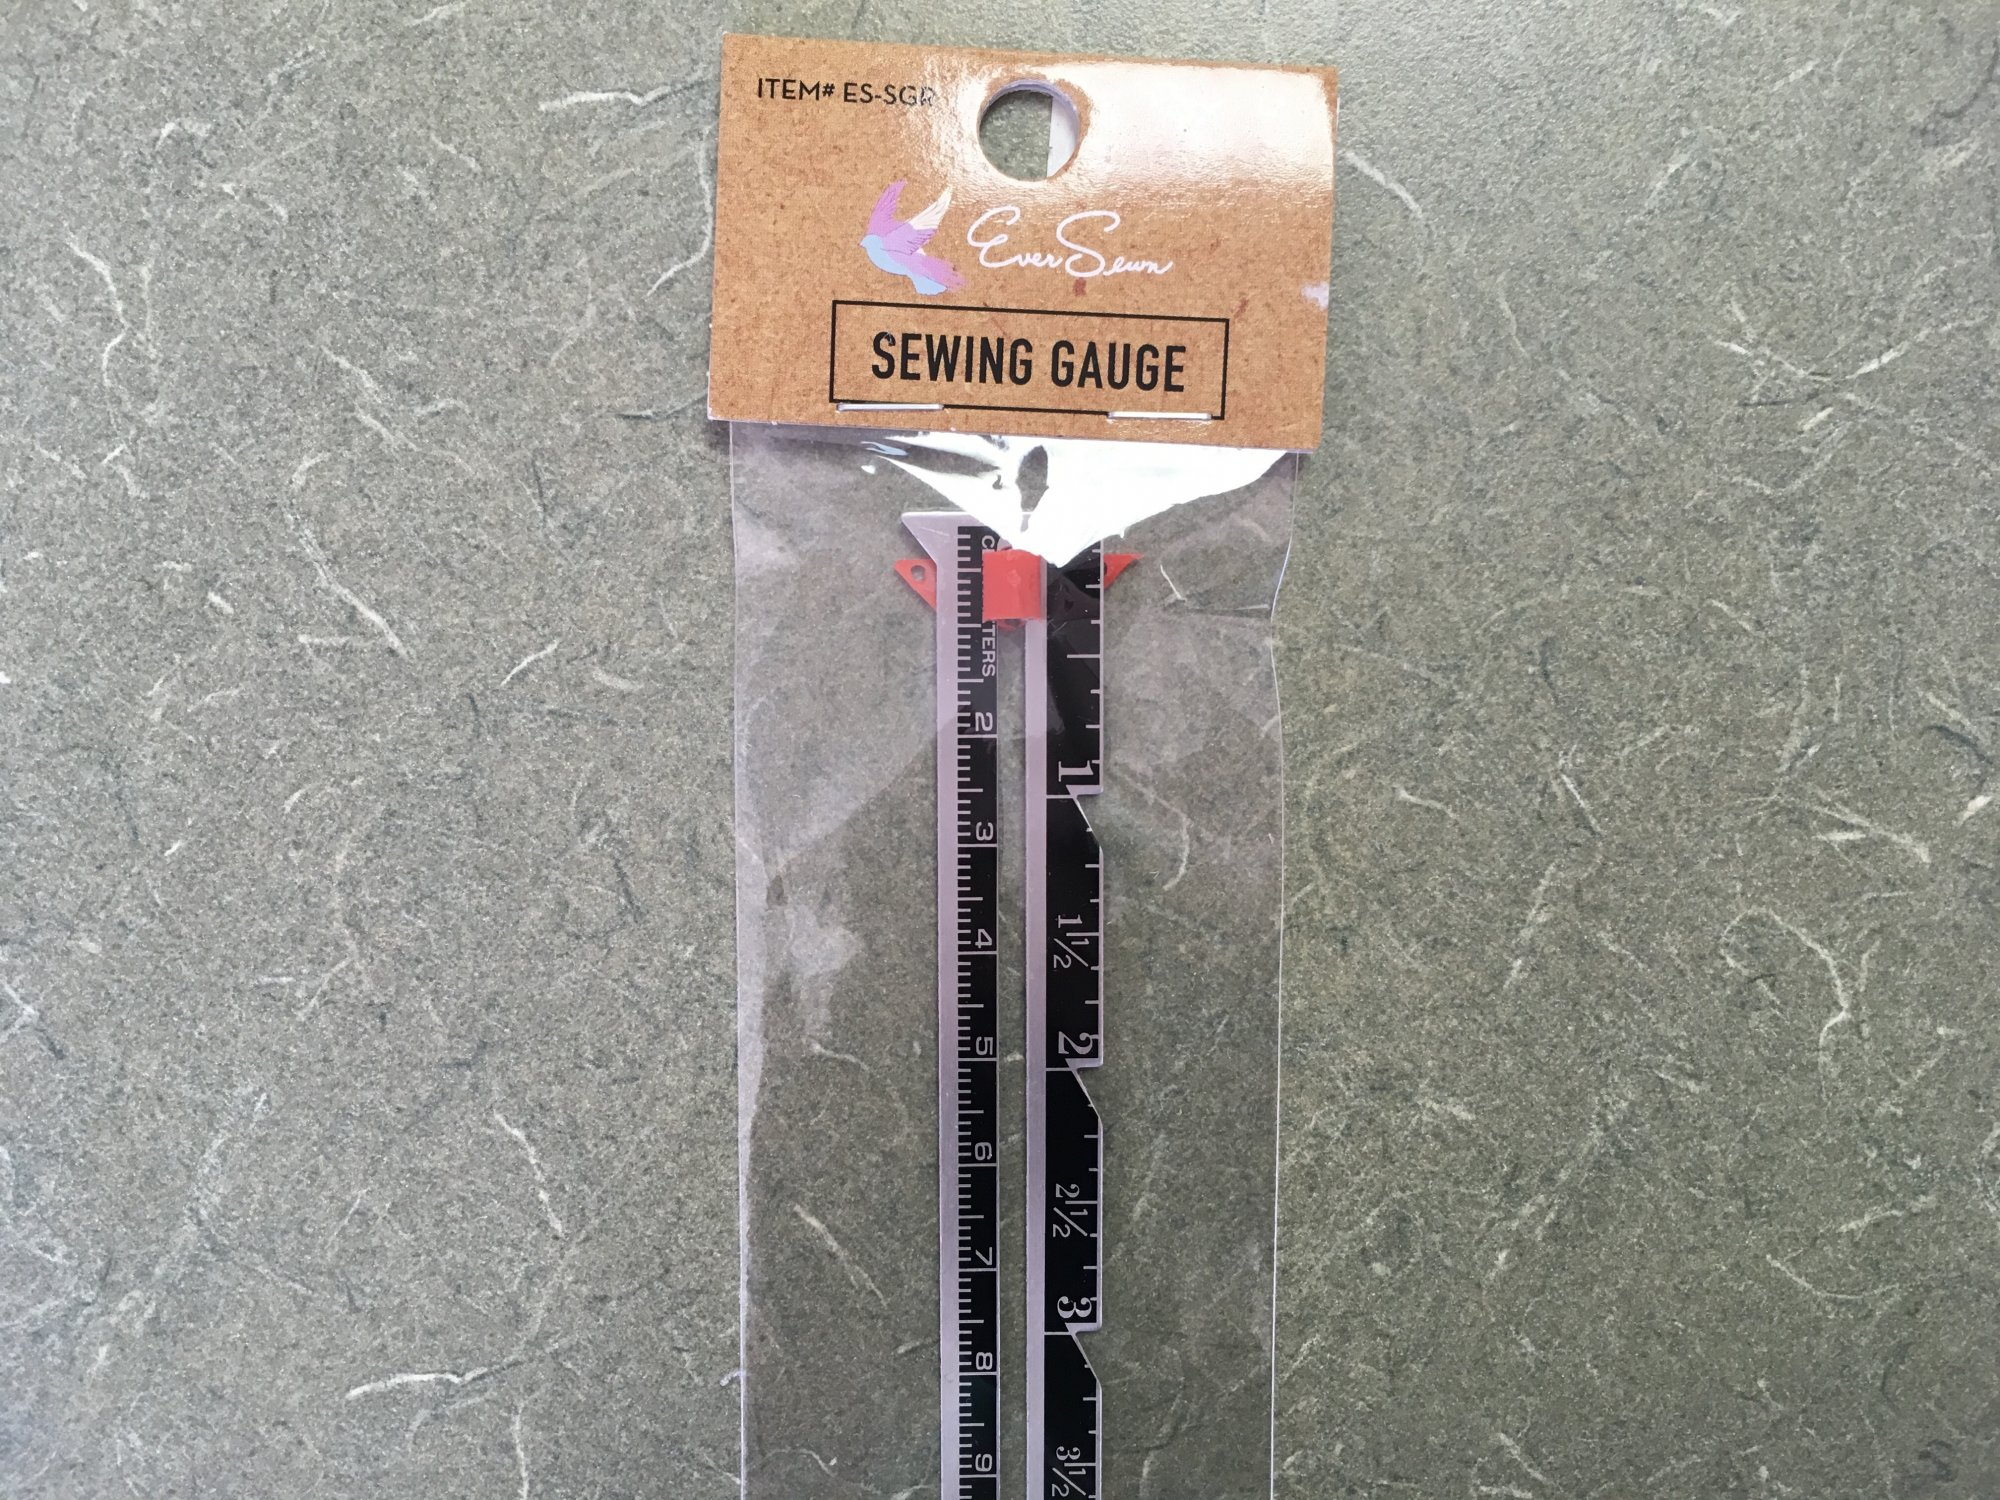 Sewing Gauge ESSGR by EverSewn